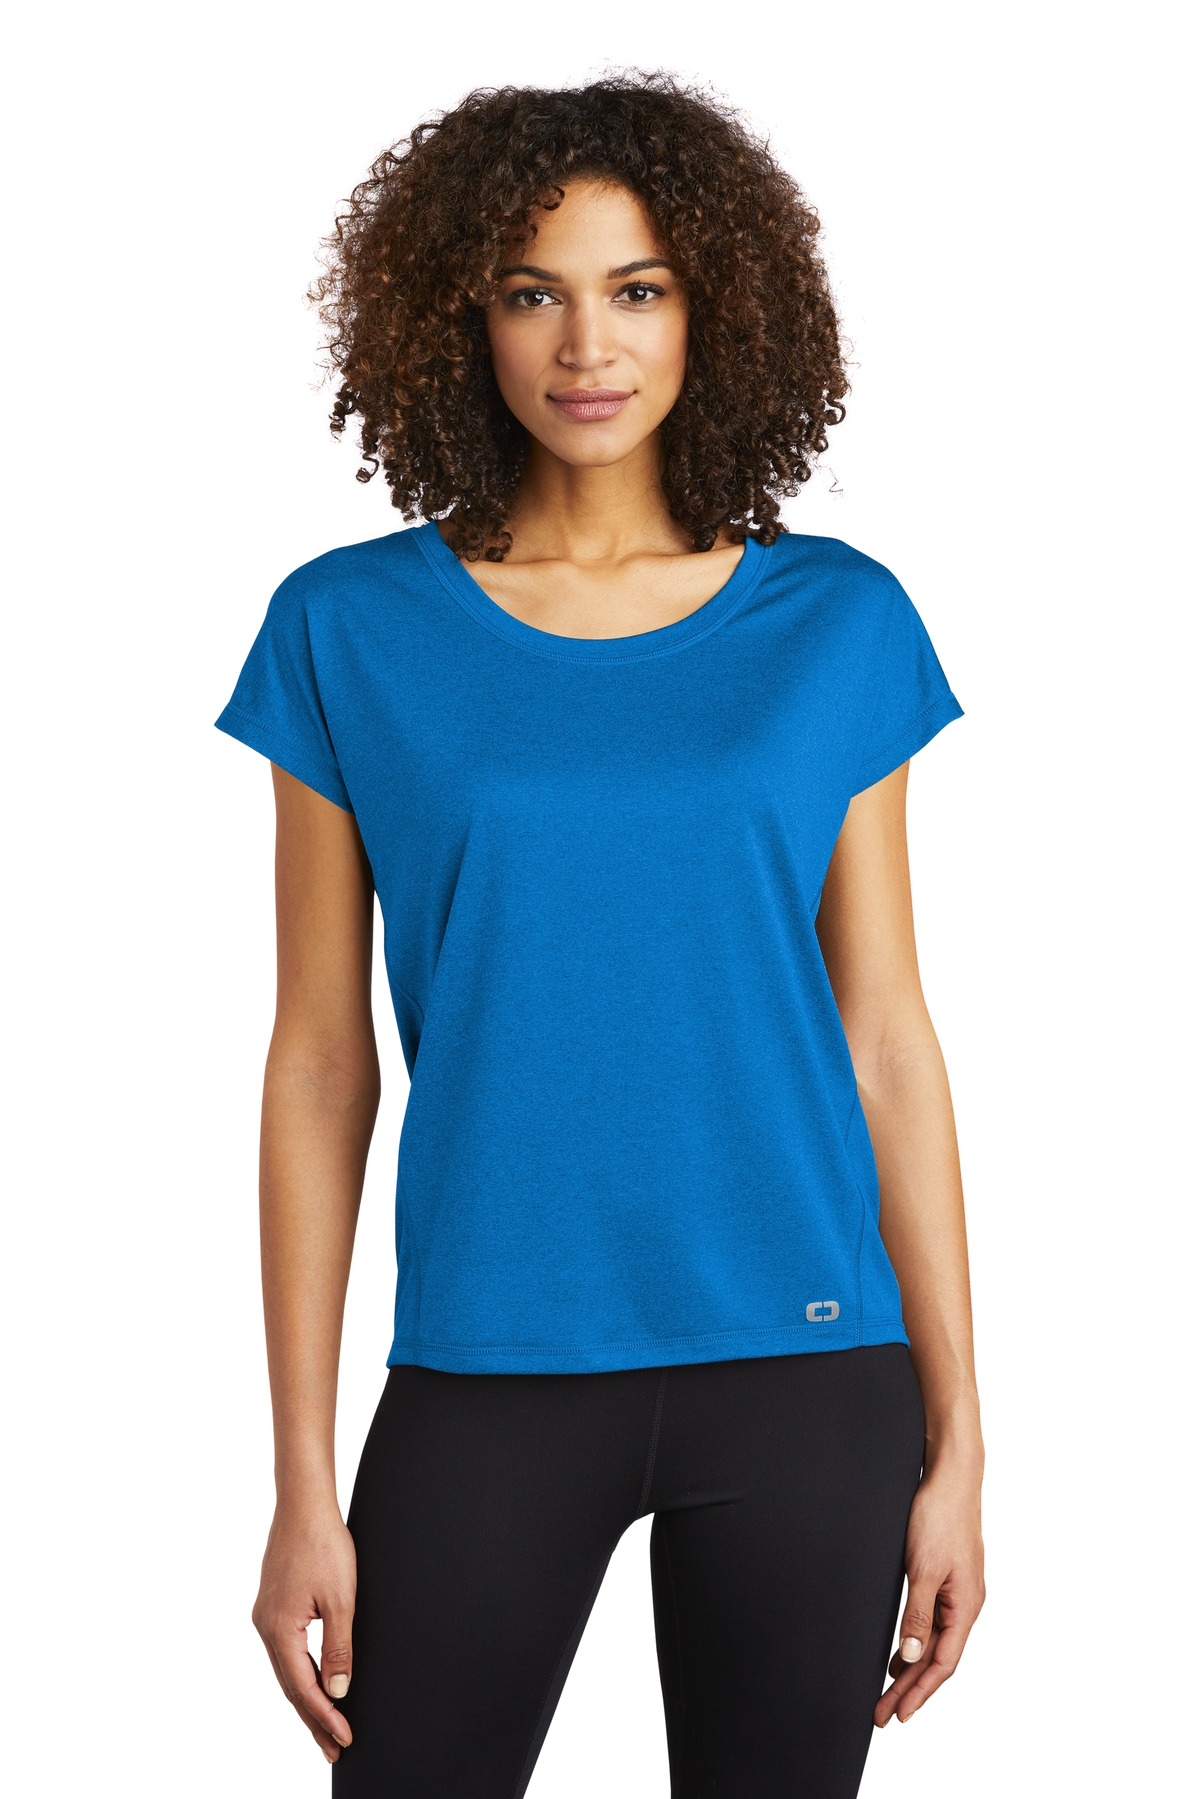 OGIO  ®  ENDURANCE Ladies Pulse Dolman Tee LOE324 - Electric Blue